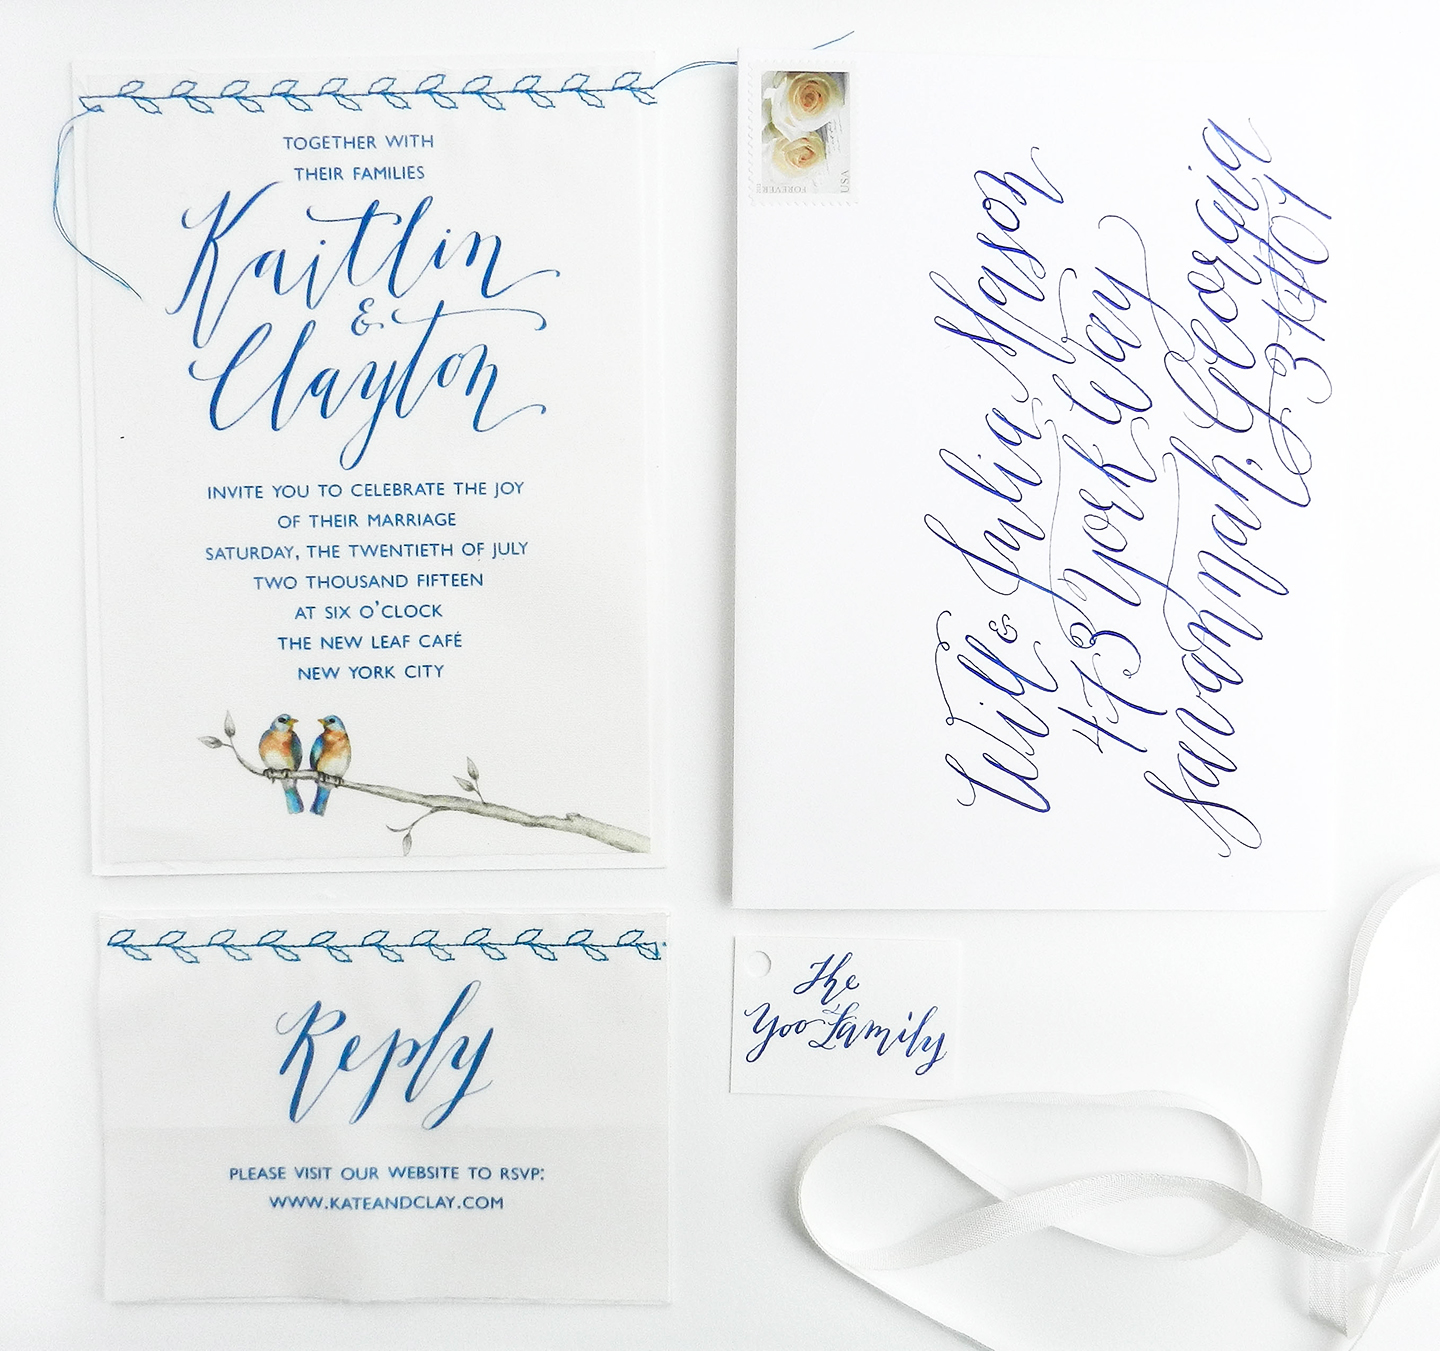 Kaitlin Style Calligraphy Worksheet